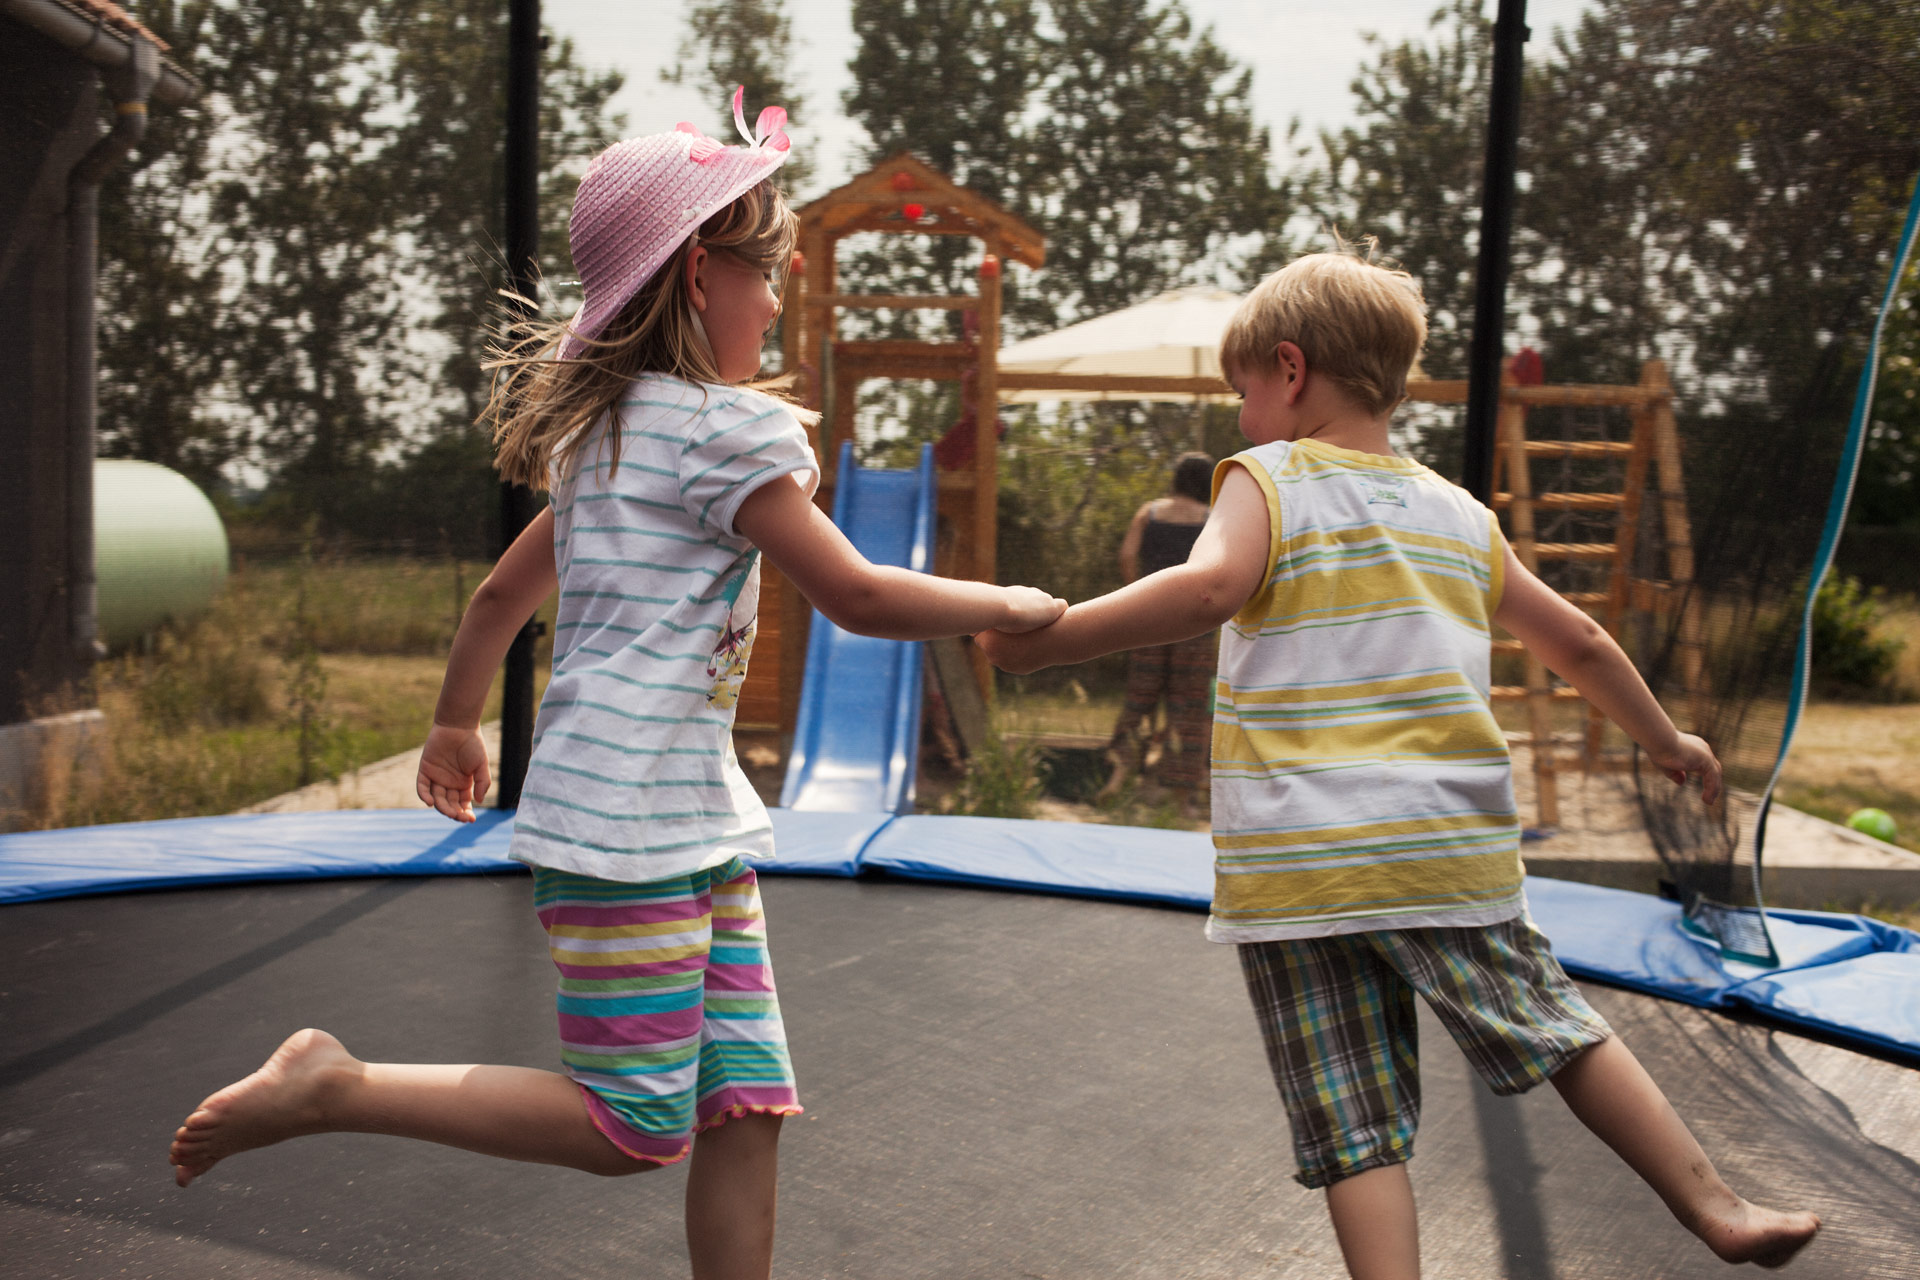 timo-stammberger-photography-fotografie-sunny-harmony-kinder-spielen-kids-playing-trampolin-happy-holding-hands